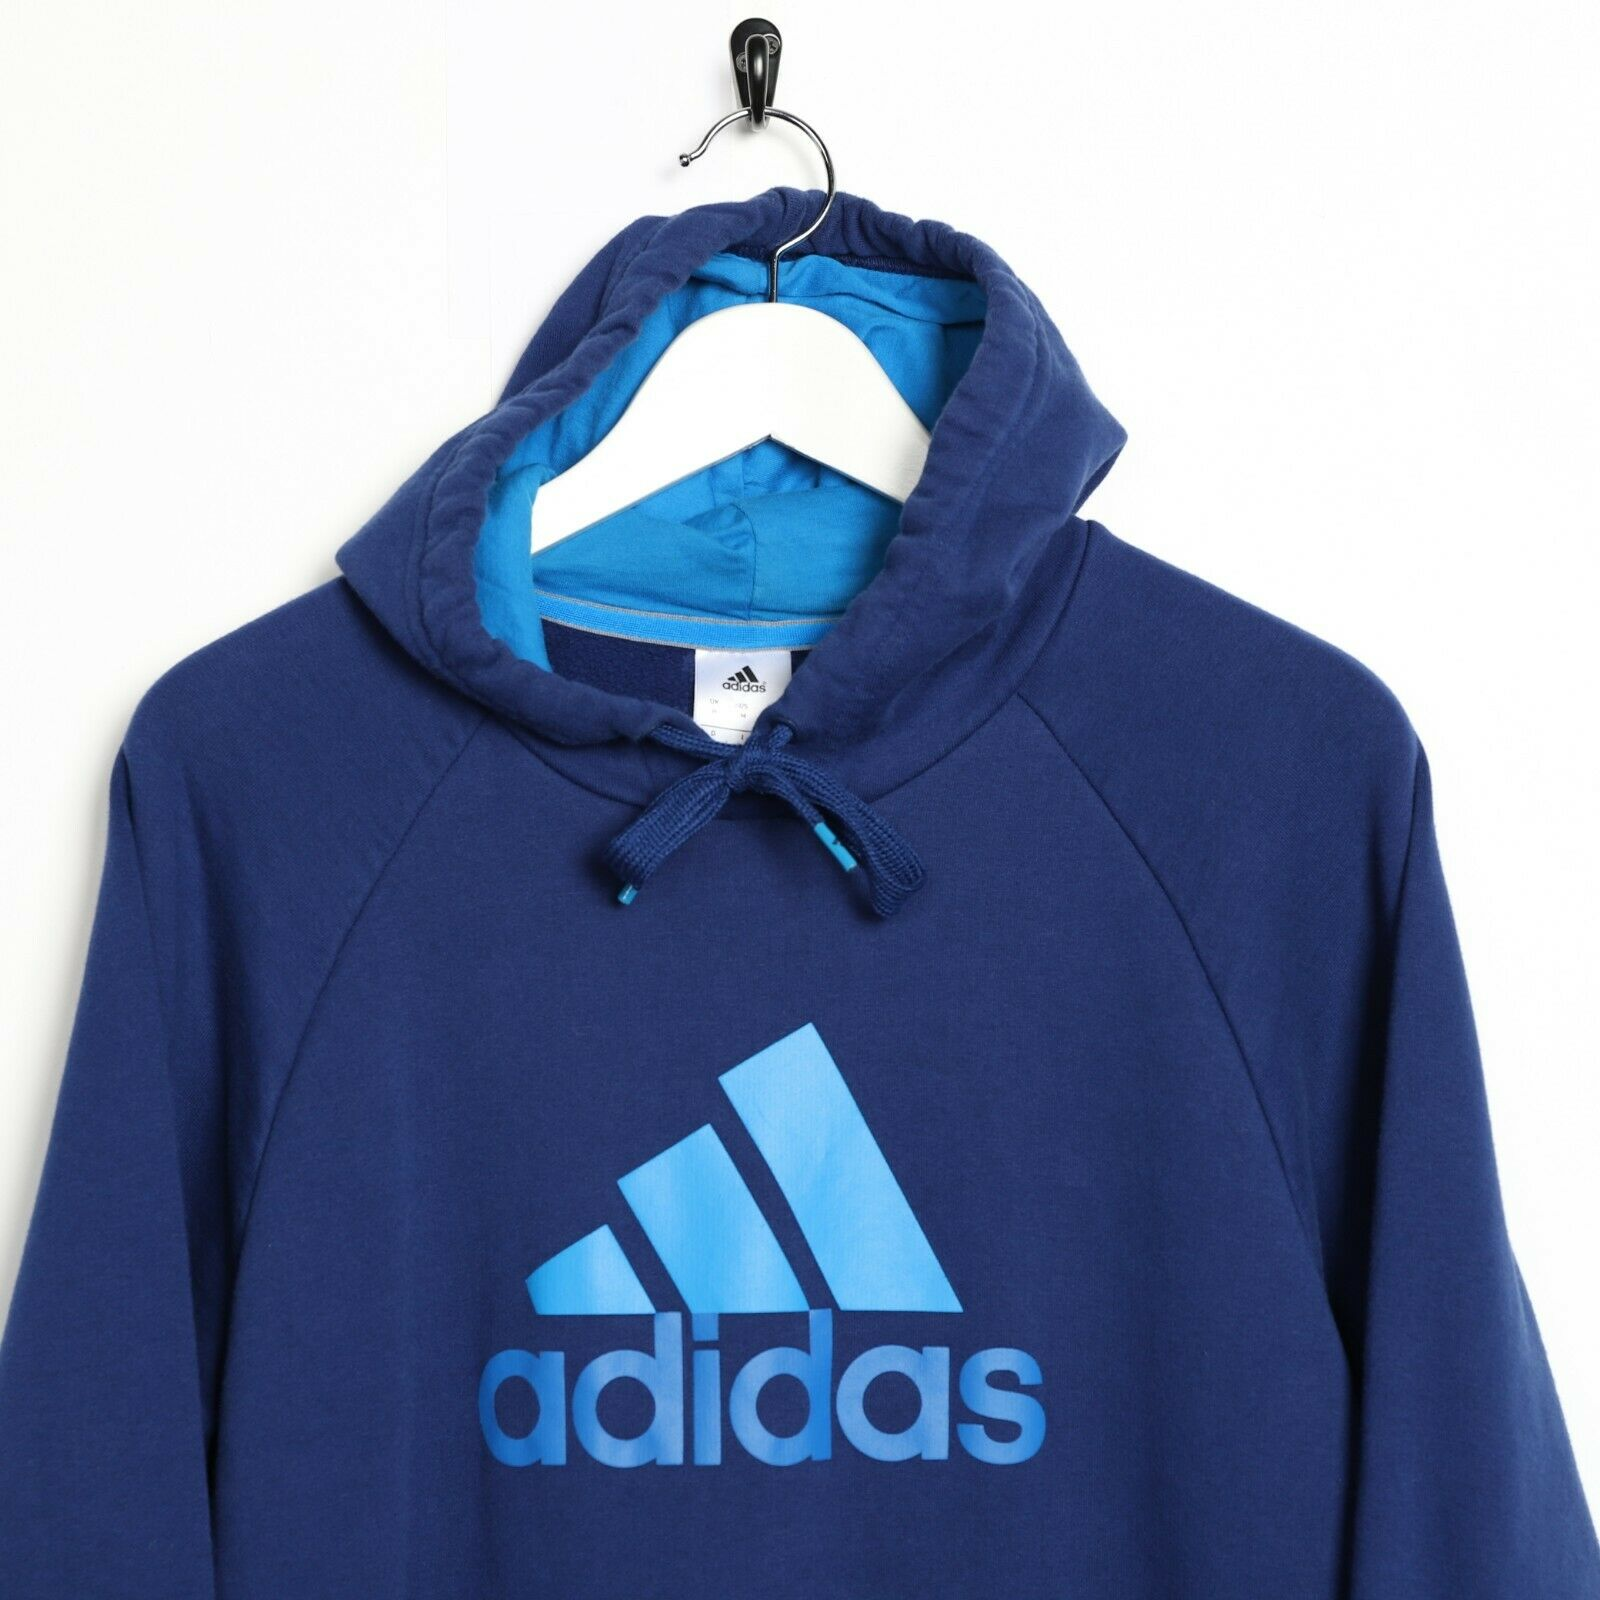 Vintage ADIDAS Big Logo Hoodie Sweatshirt Blue Medium M